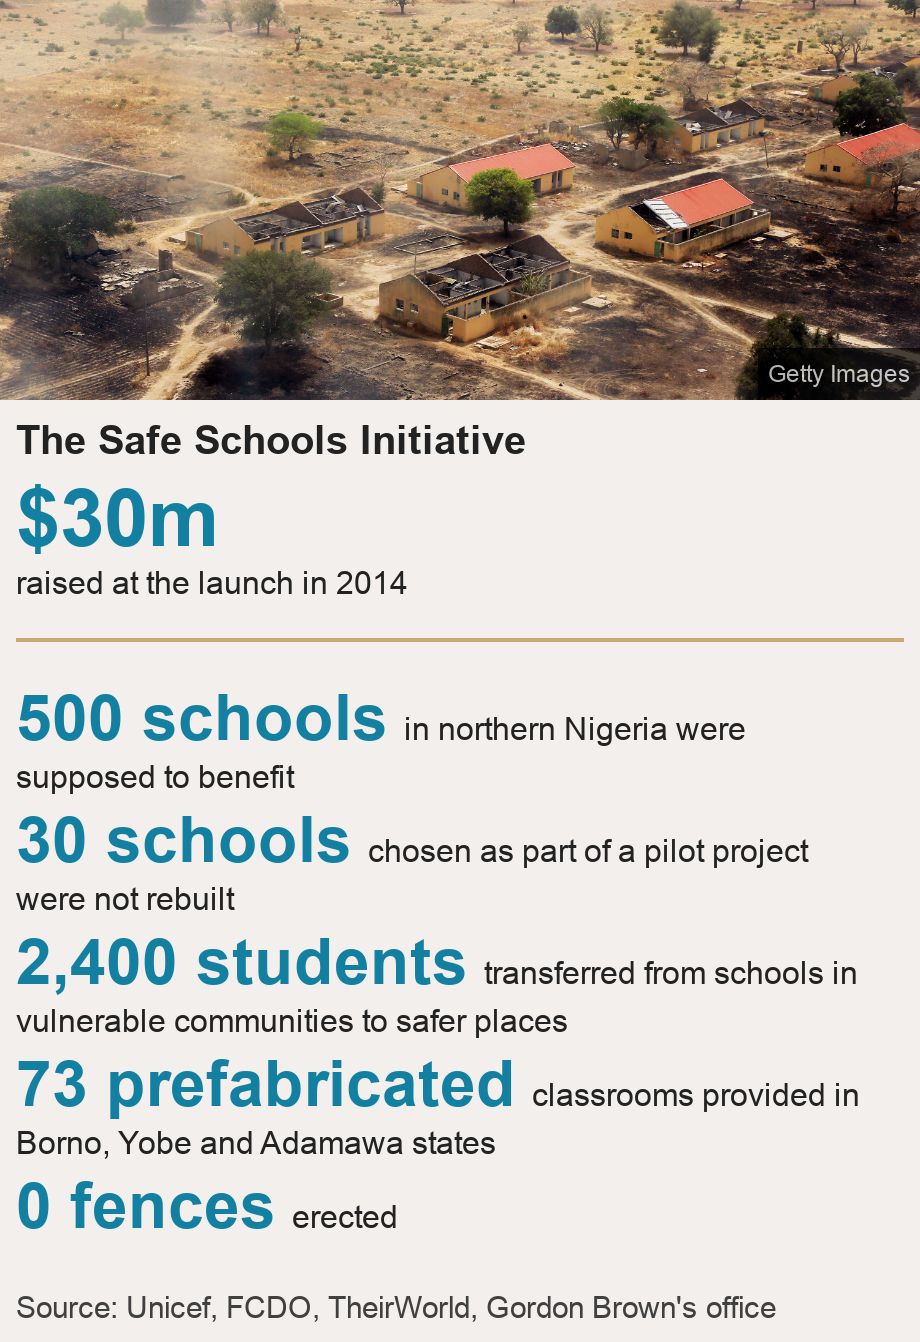 The Safe Schools Initiative.  [ $30m raised at the launch in 2014 ] [ 500 schools in northern Nigeria were supposed to benefit ],[ 30 schools chosen as part of a pilot project were not rebuilt ],[ 2,400 students transferred from schools in vulnerable communities to safer places ],[ 73 prefabricated  classrooms provided in Borno, Yobe and Adamawa states ],[ 0 fences erected ], Source: Source: Unicef, FCDO, TheirWorld, Gordon Brown's office, Image: Burnt classrooms of Government Secondary School, Chibok